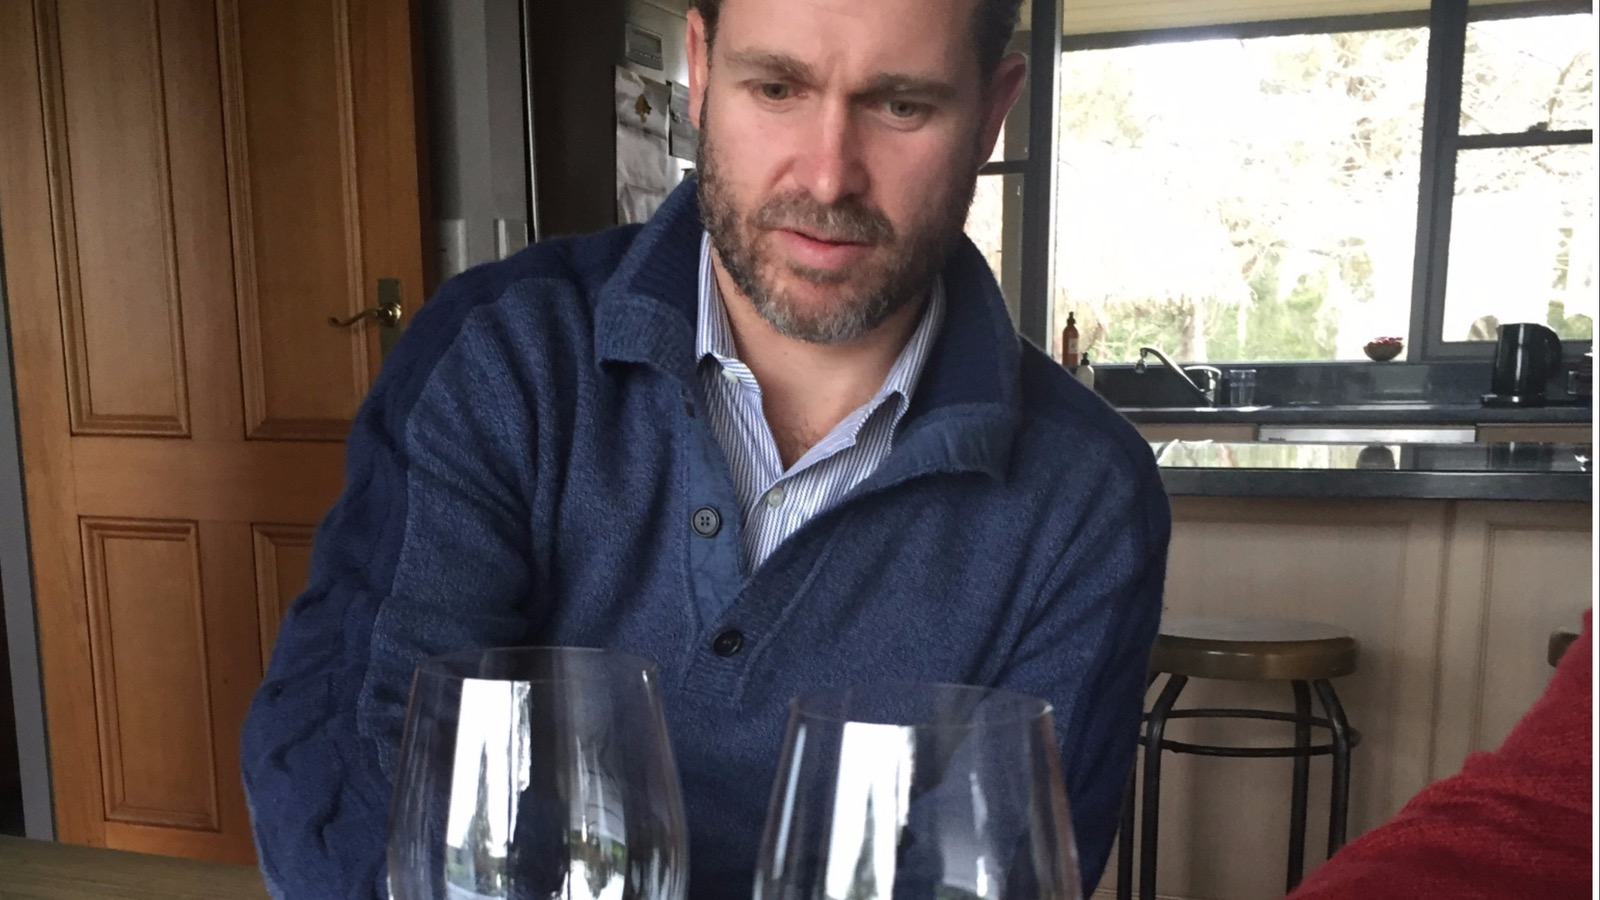 Tasting Chardonnay from one of the earliest vineyards